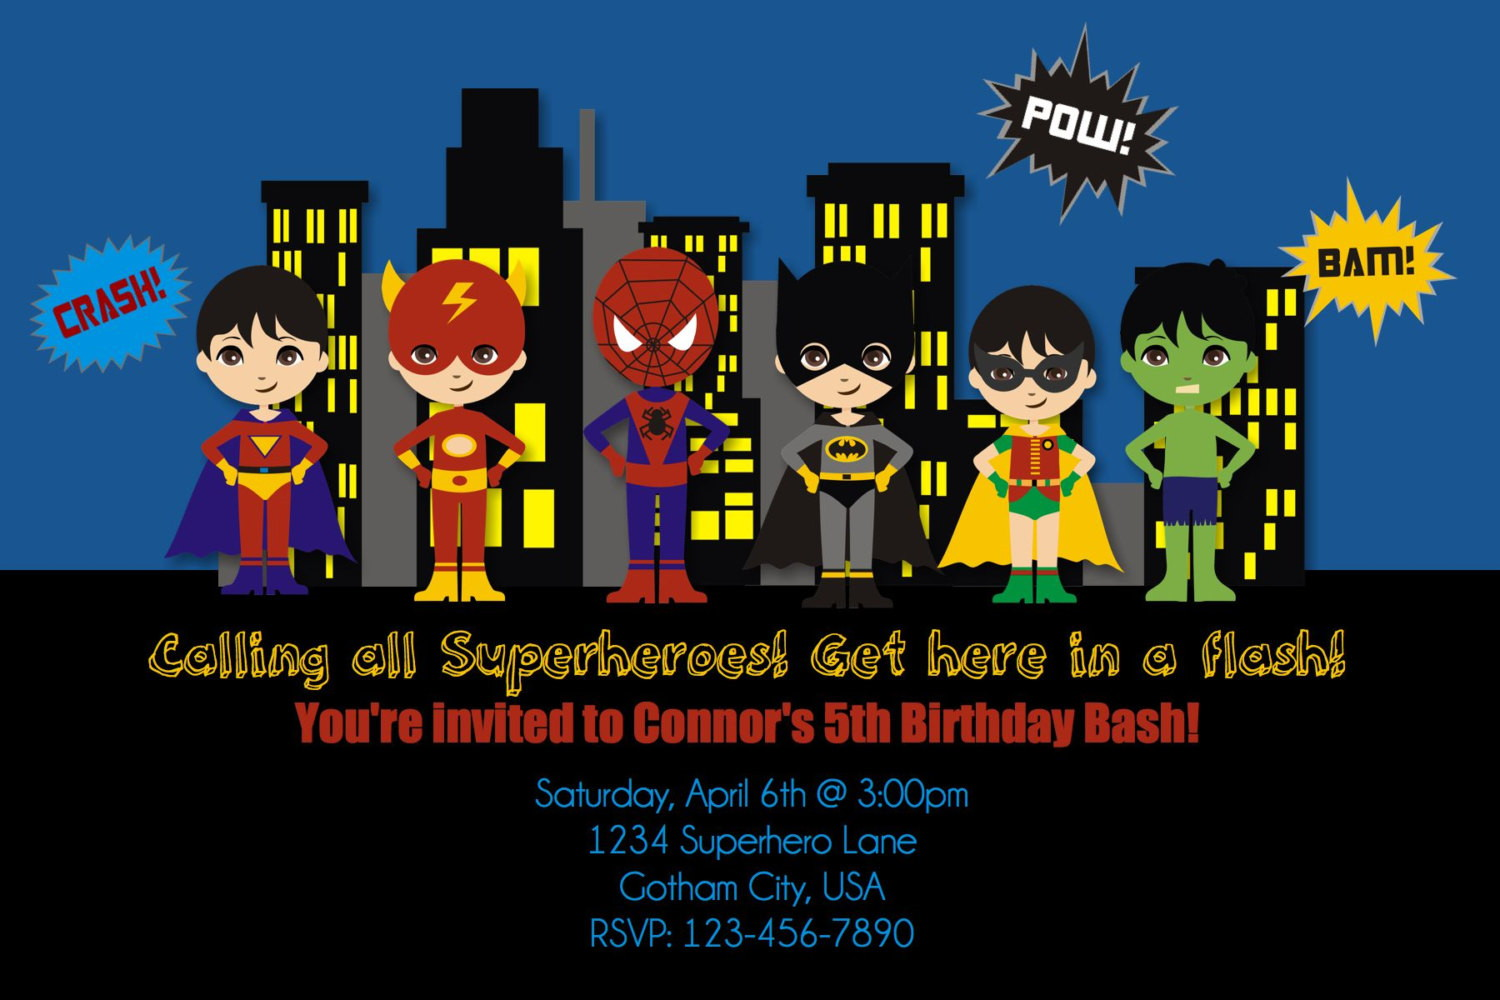 008 Exceptional Editable Superhero Invitation Template Free Concept